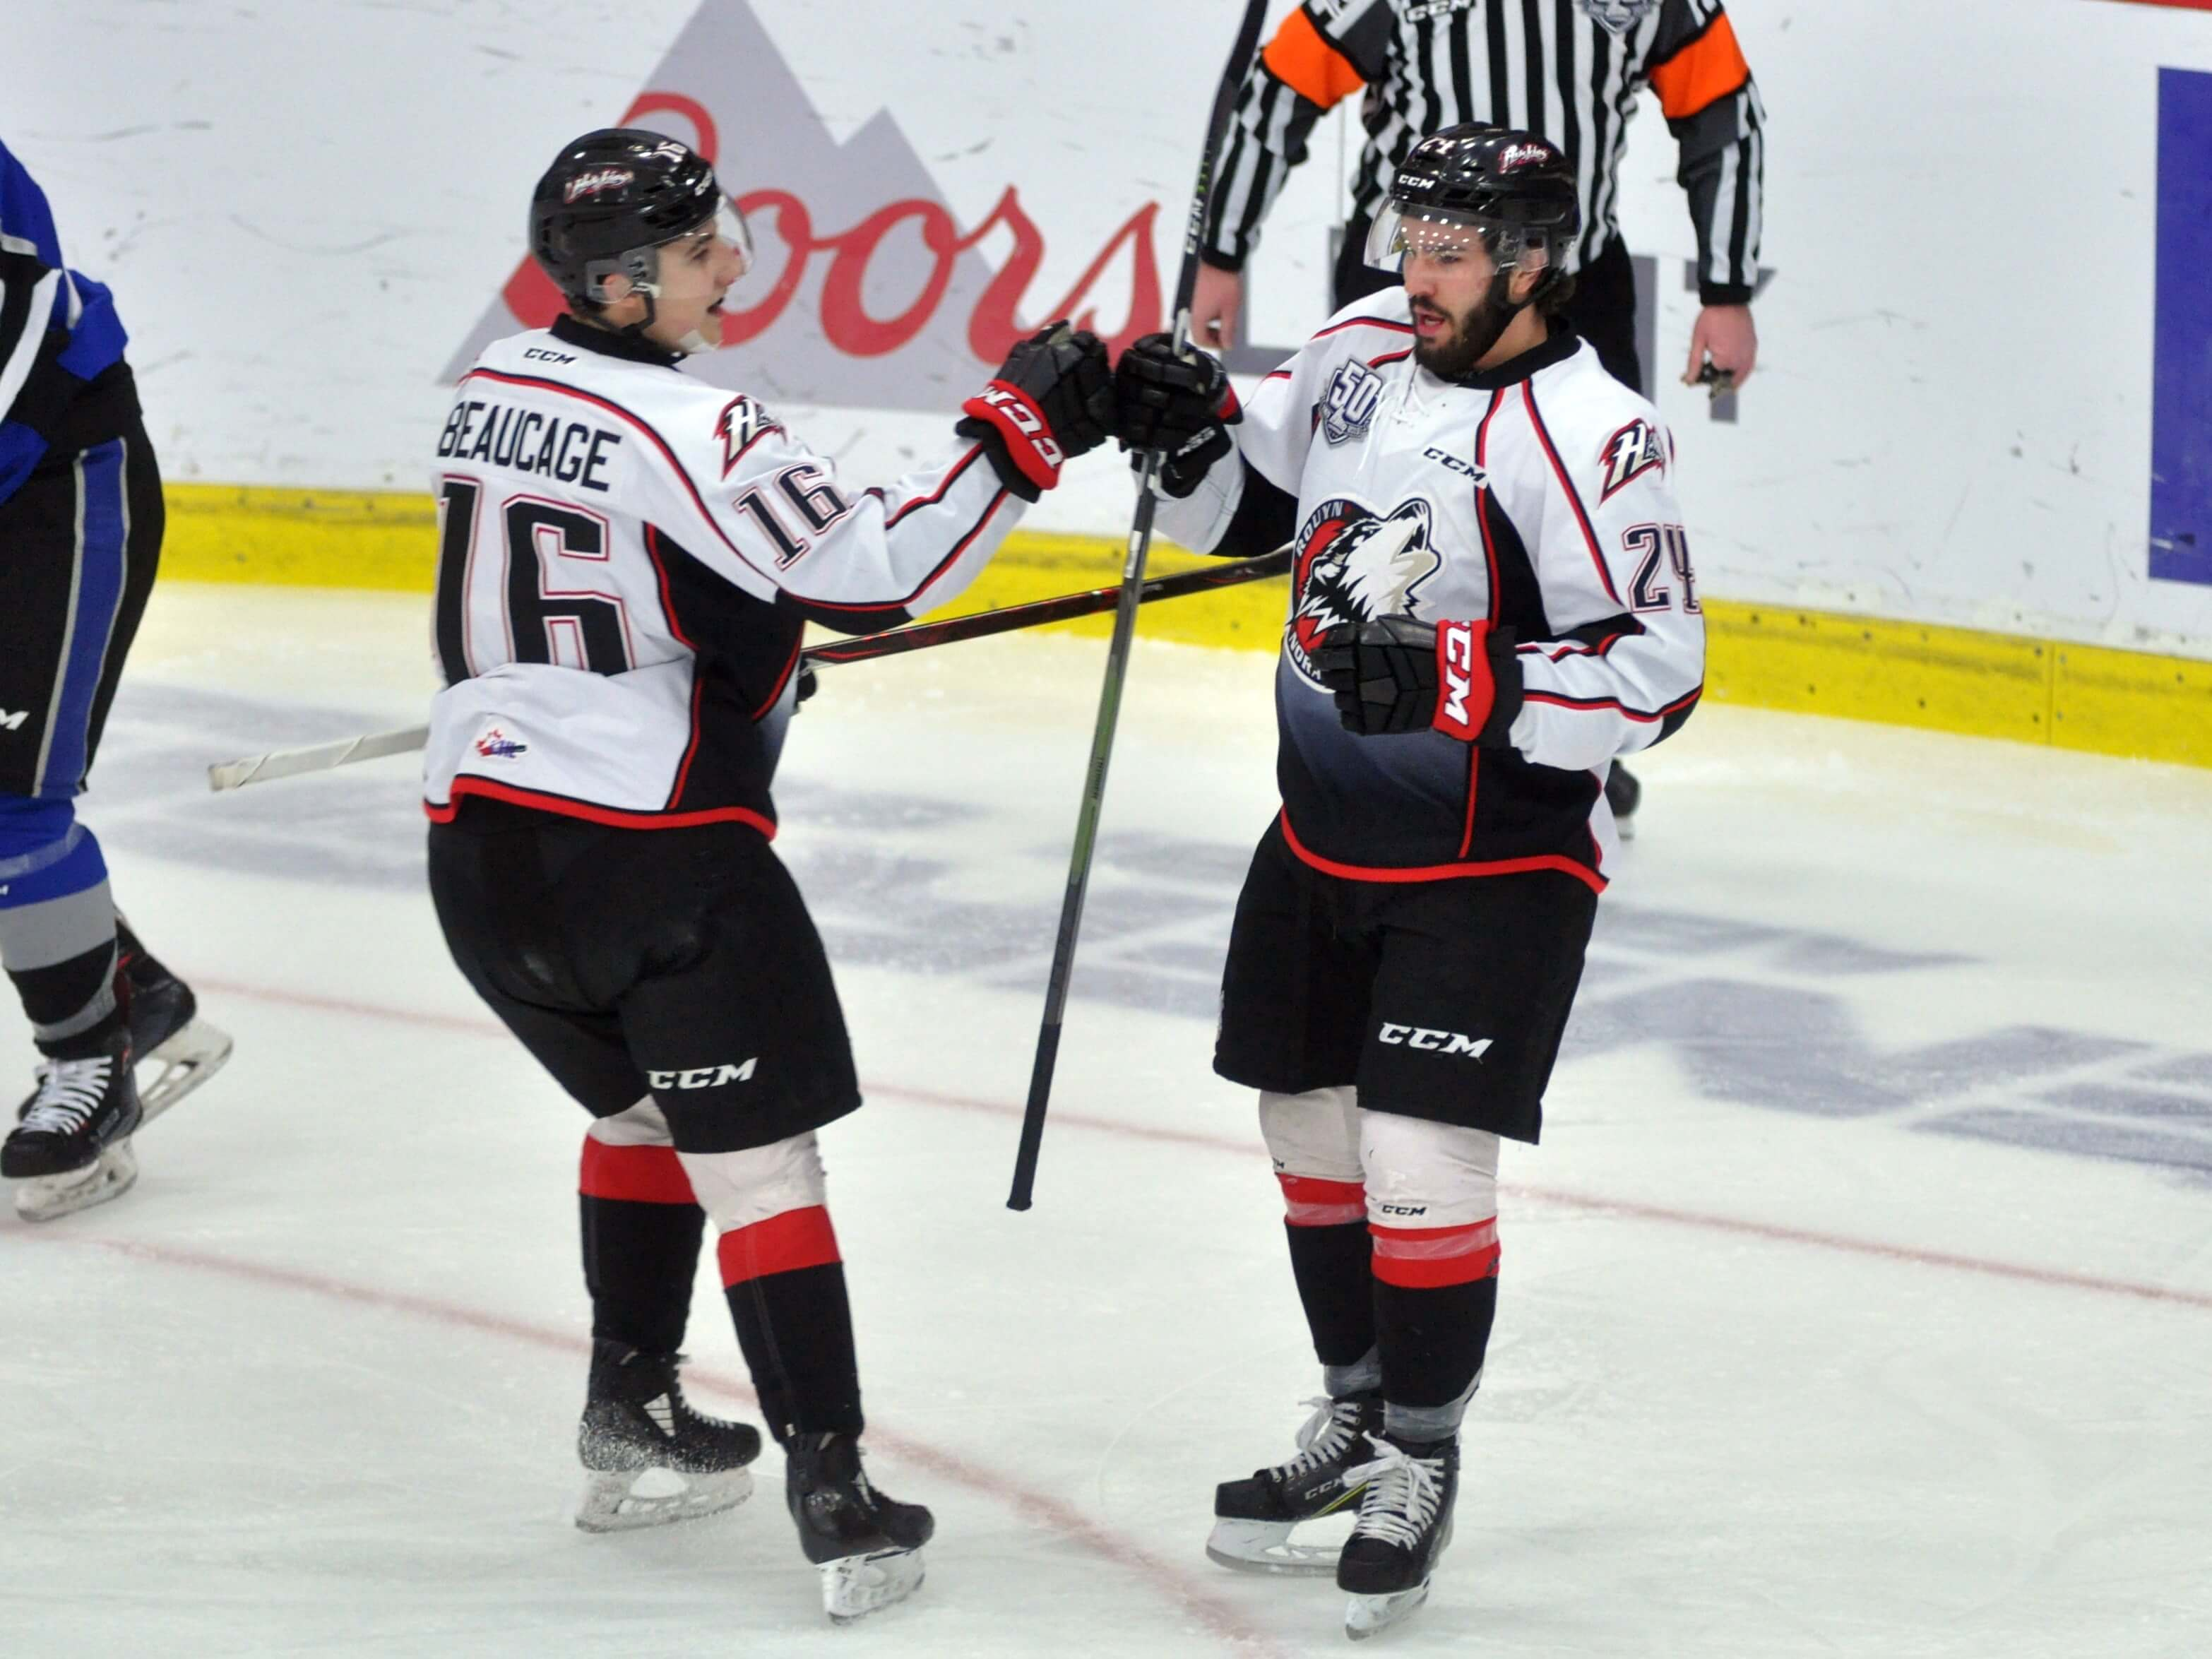 Huskies Rouyn-Noranda Sea Dogs Saint John